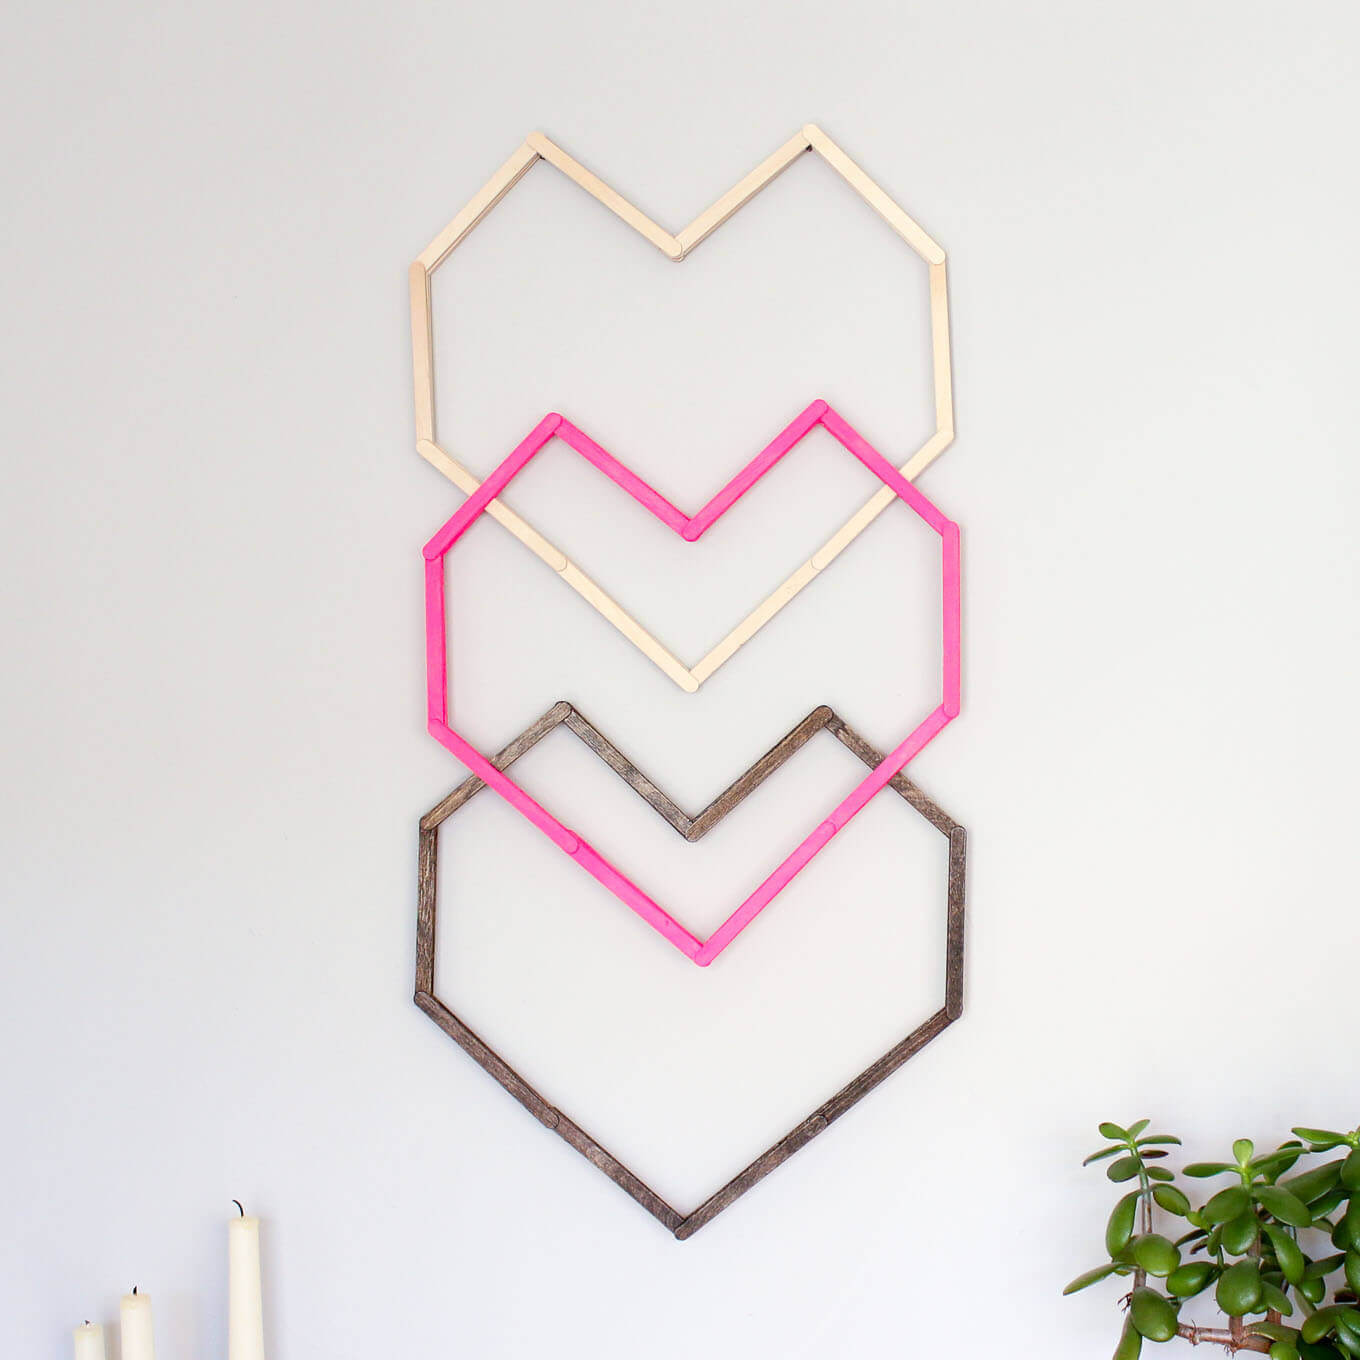 Popsicle Stick Hearts DIY Wall Art Design